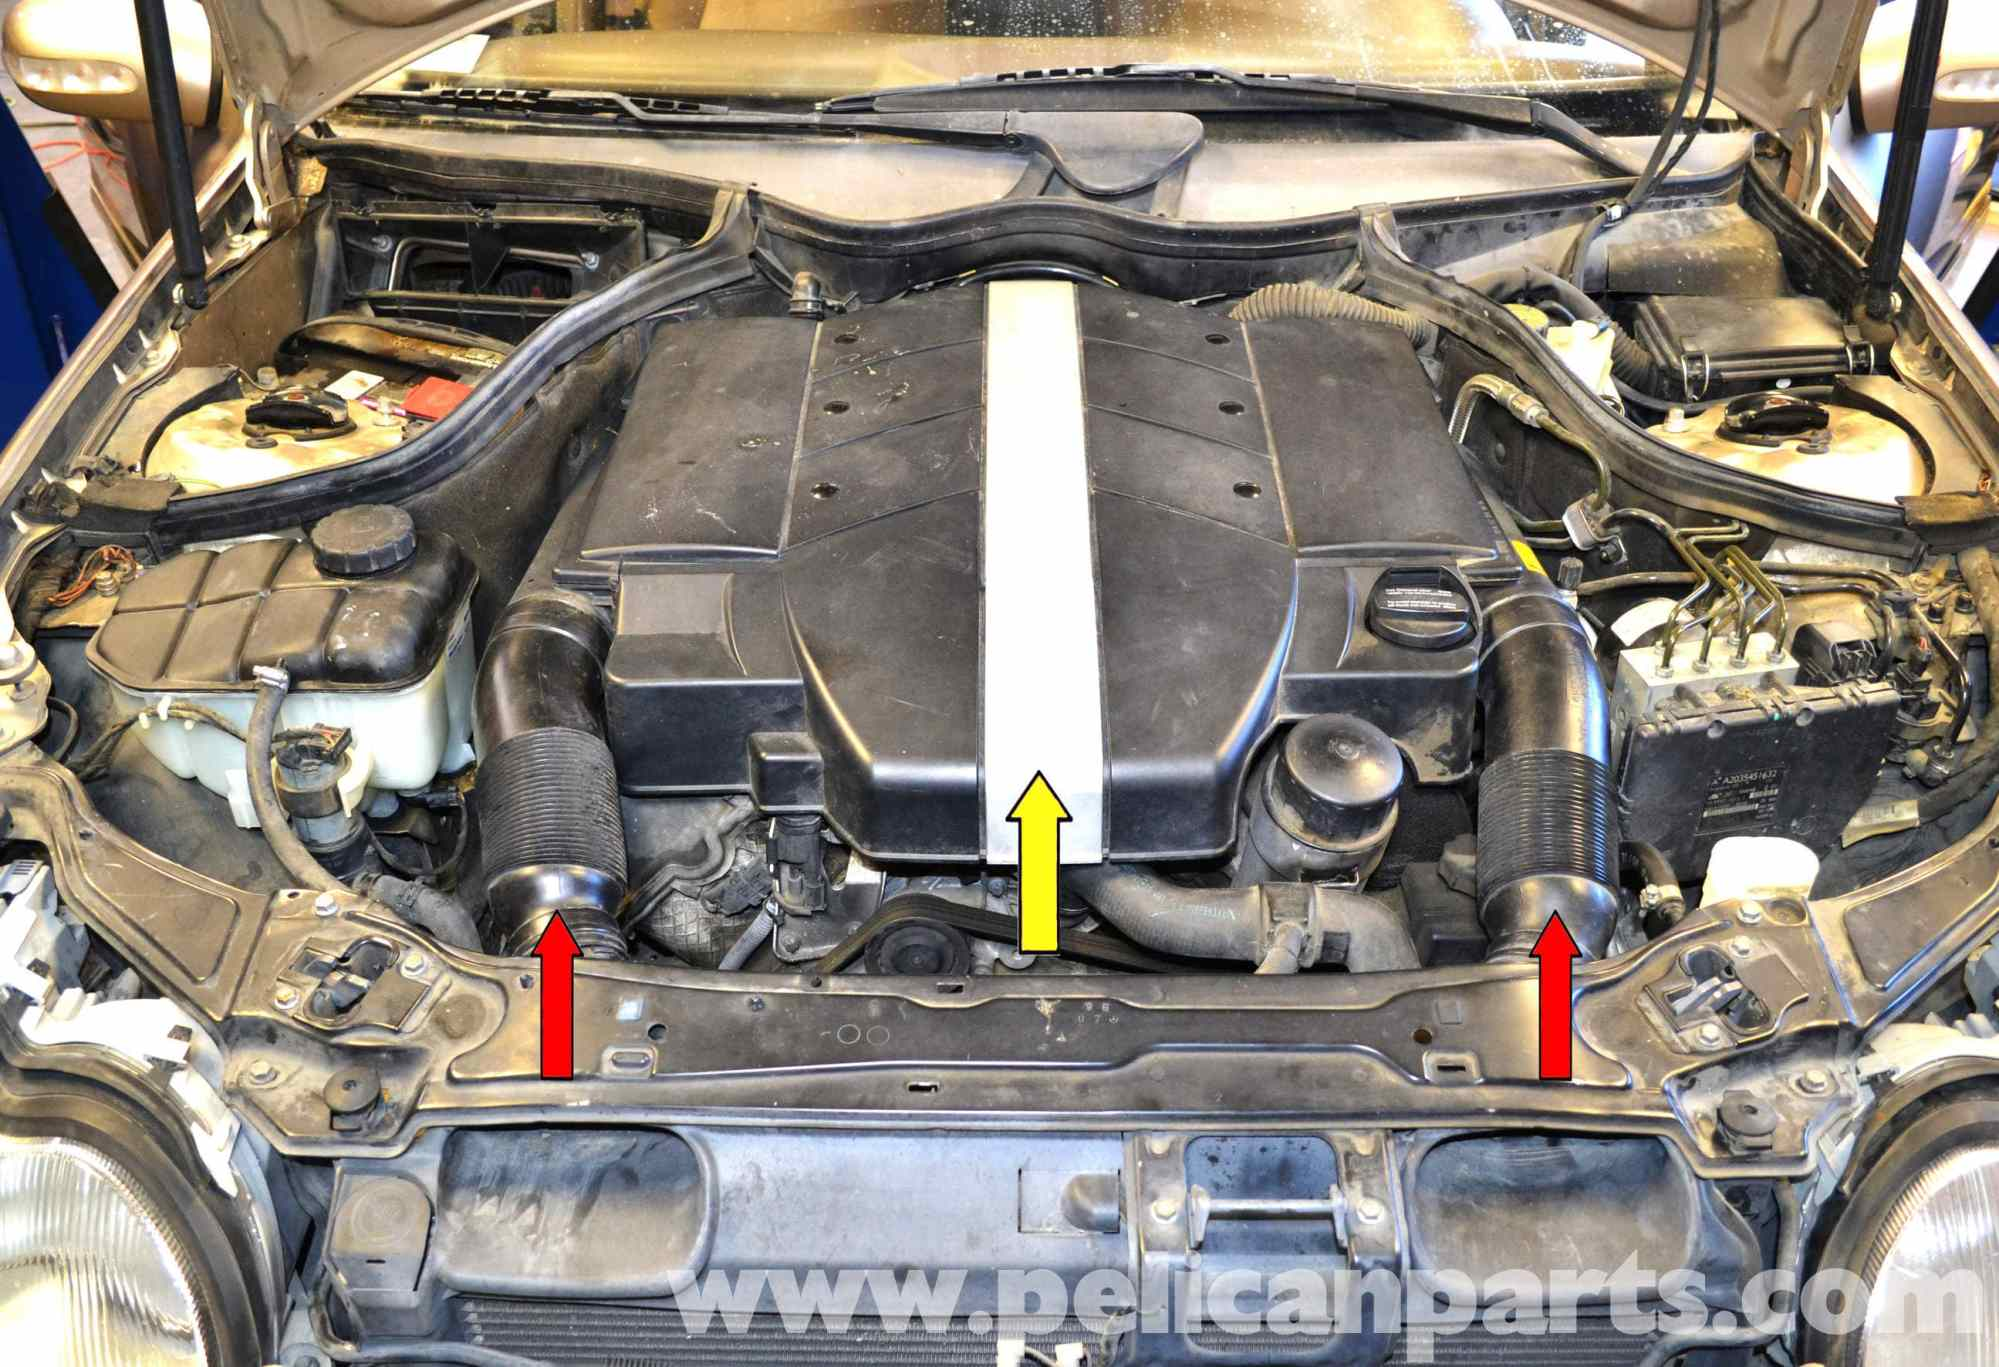 hight resolution of mercedes benz w203 valve cover gasket replacement 2001 2007 c230large image extra large image